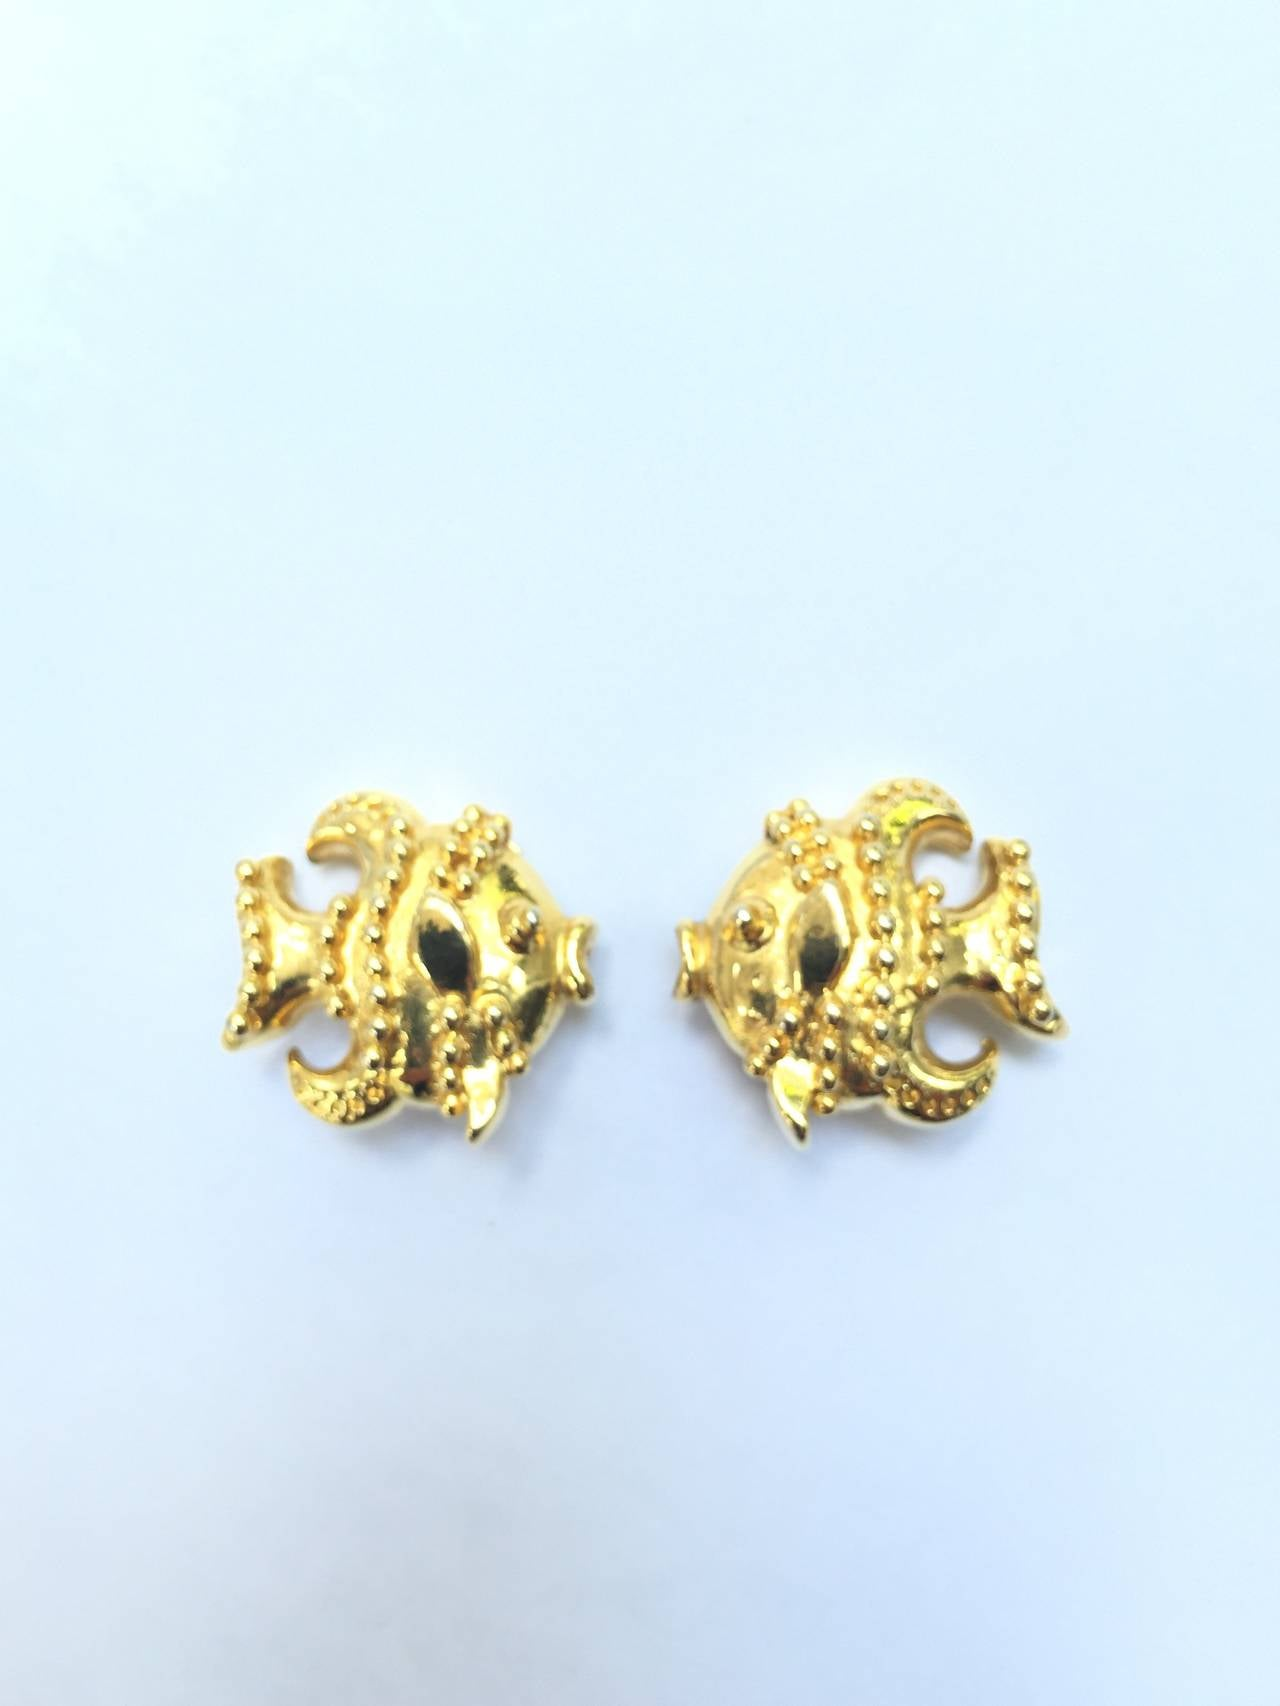 Gianni Versace gold fish clip-on earrings. For Sale 2